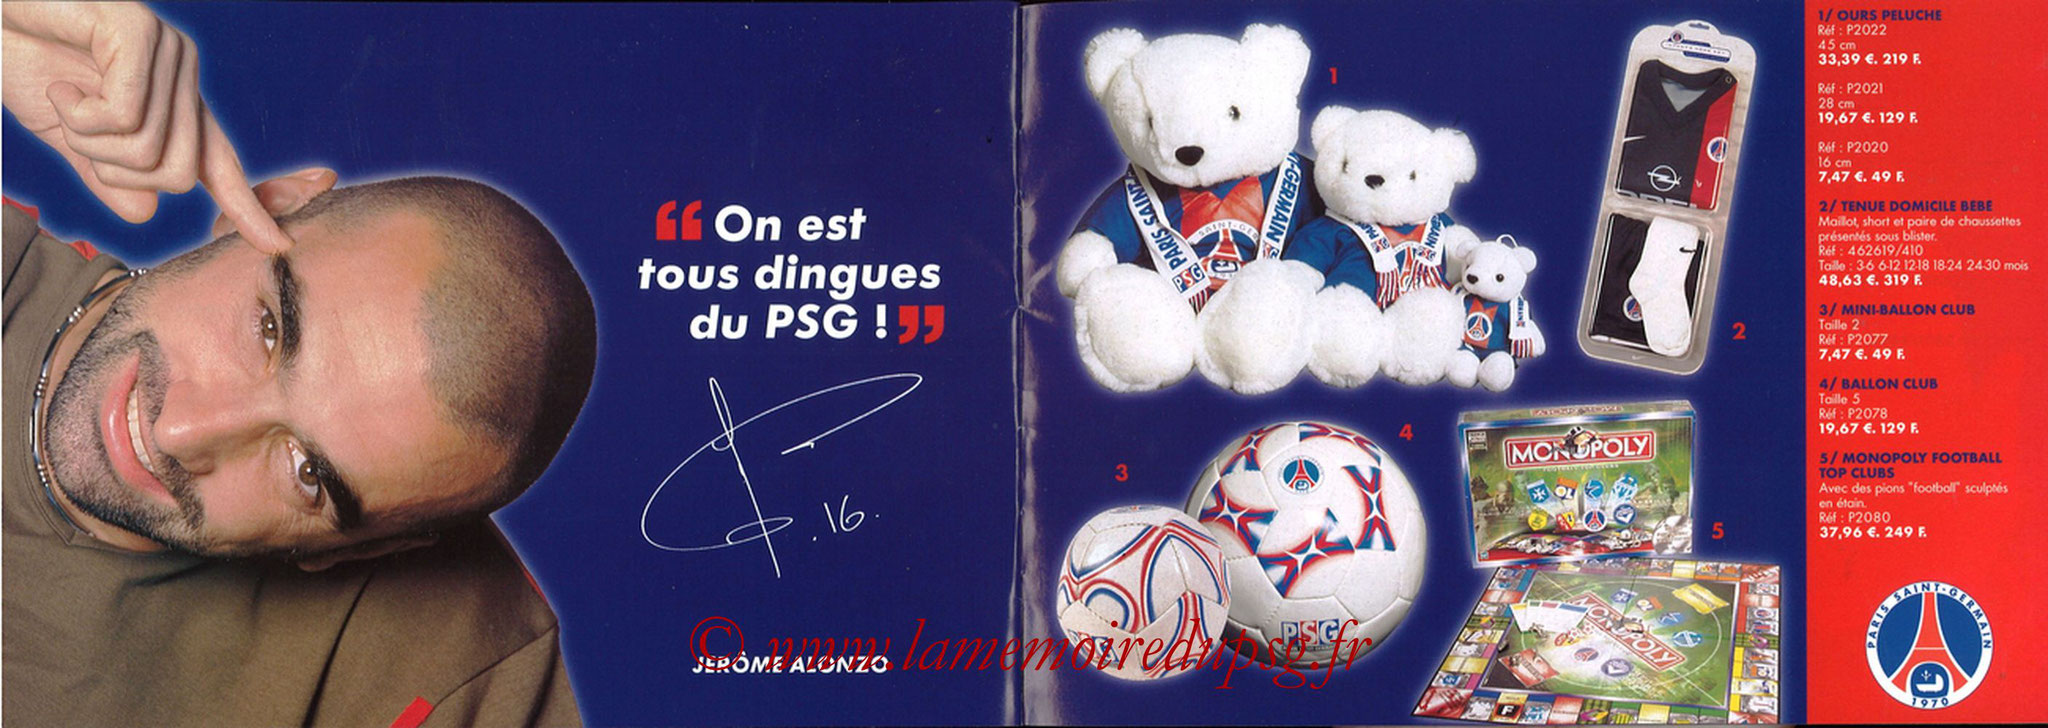 Catalogue PSG - 2001-02 - Noêl - Pages 20 et 21